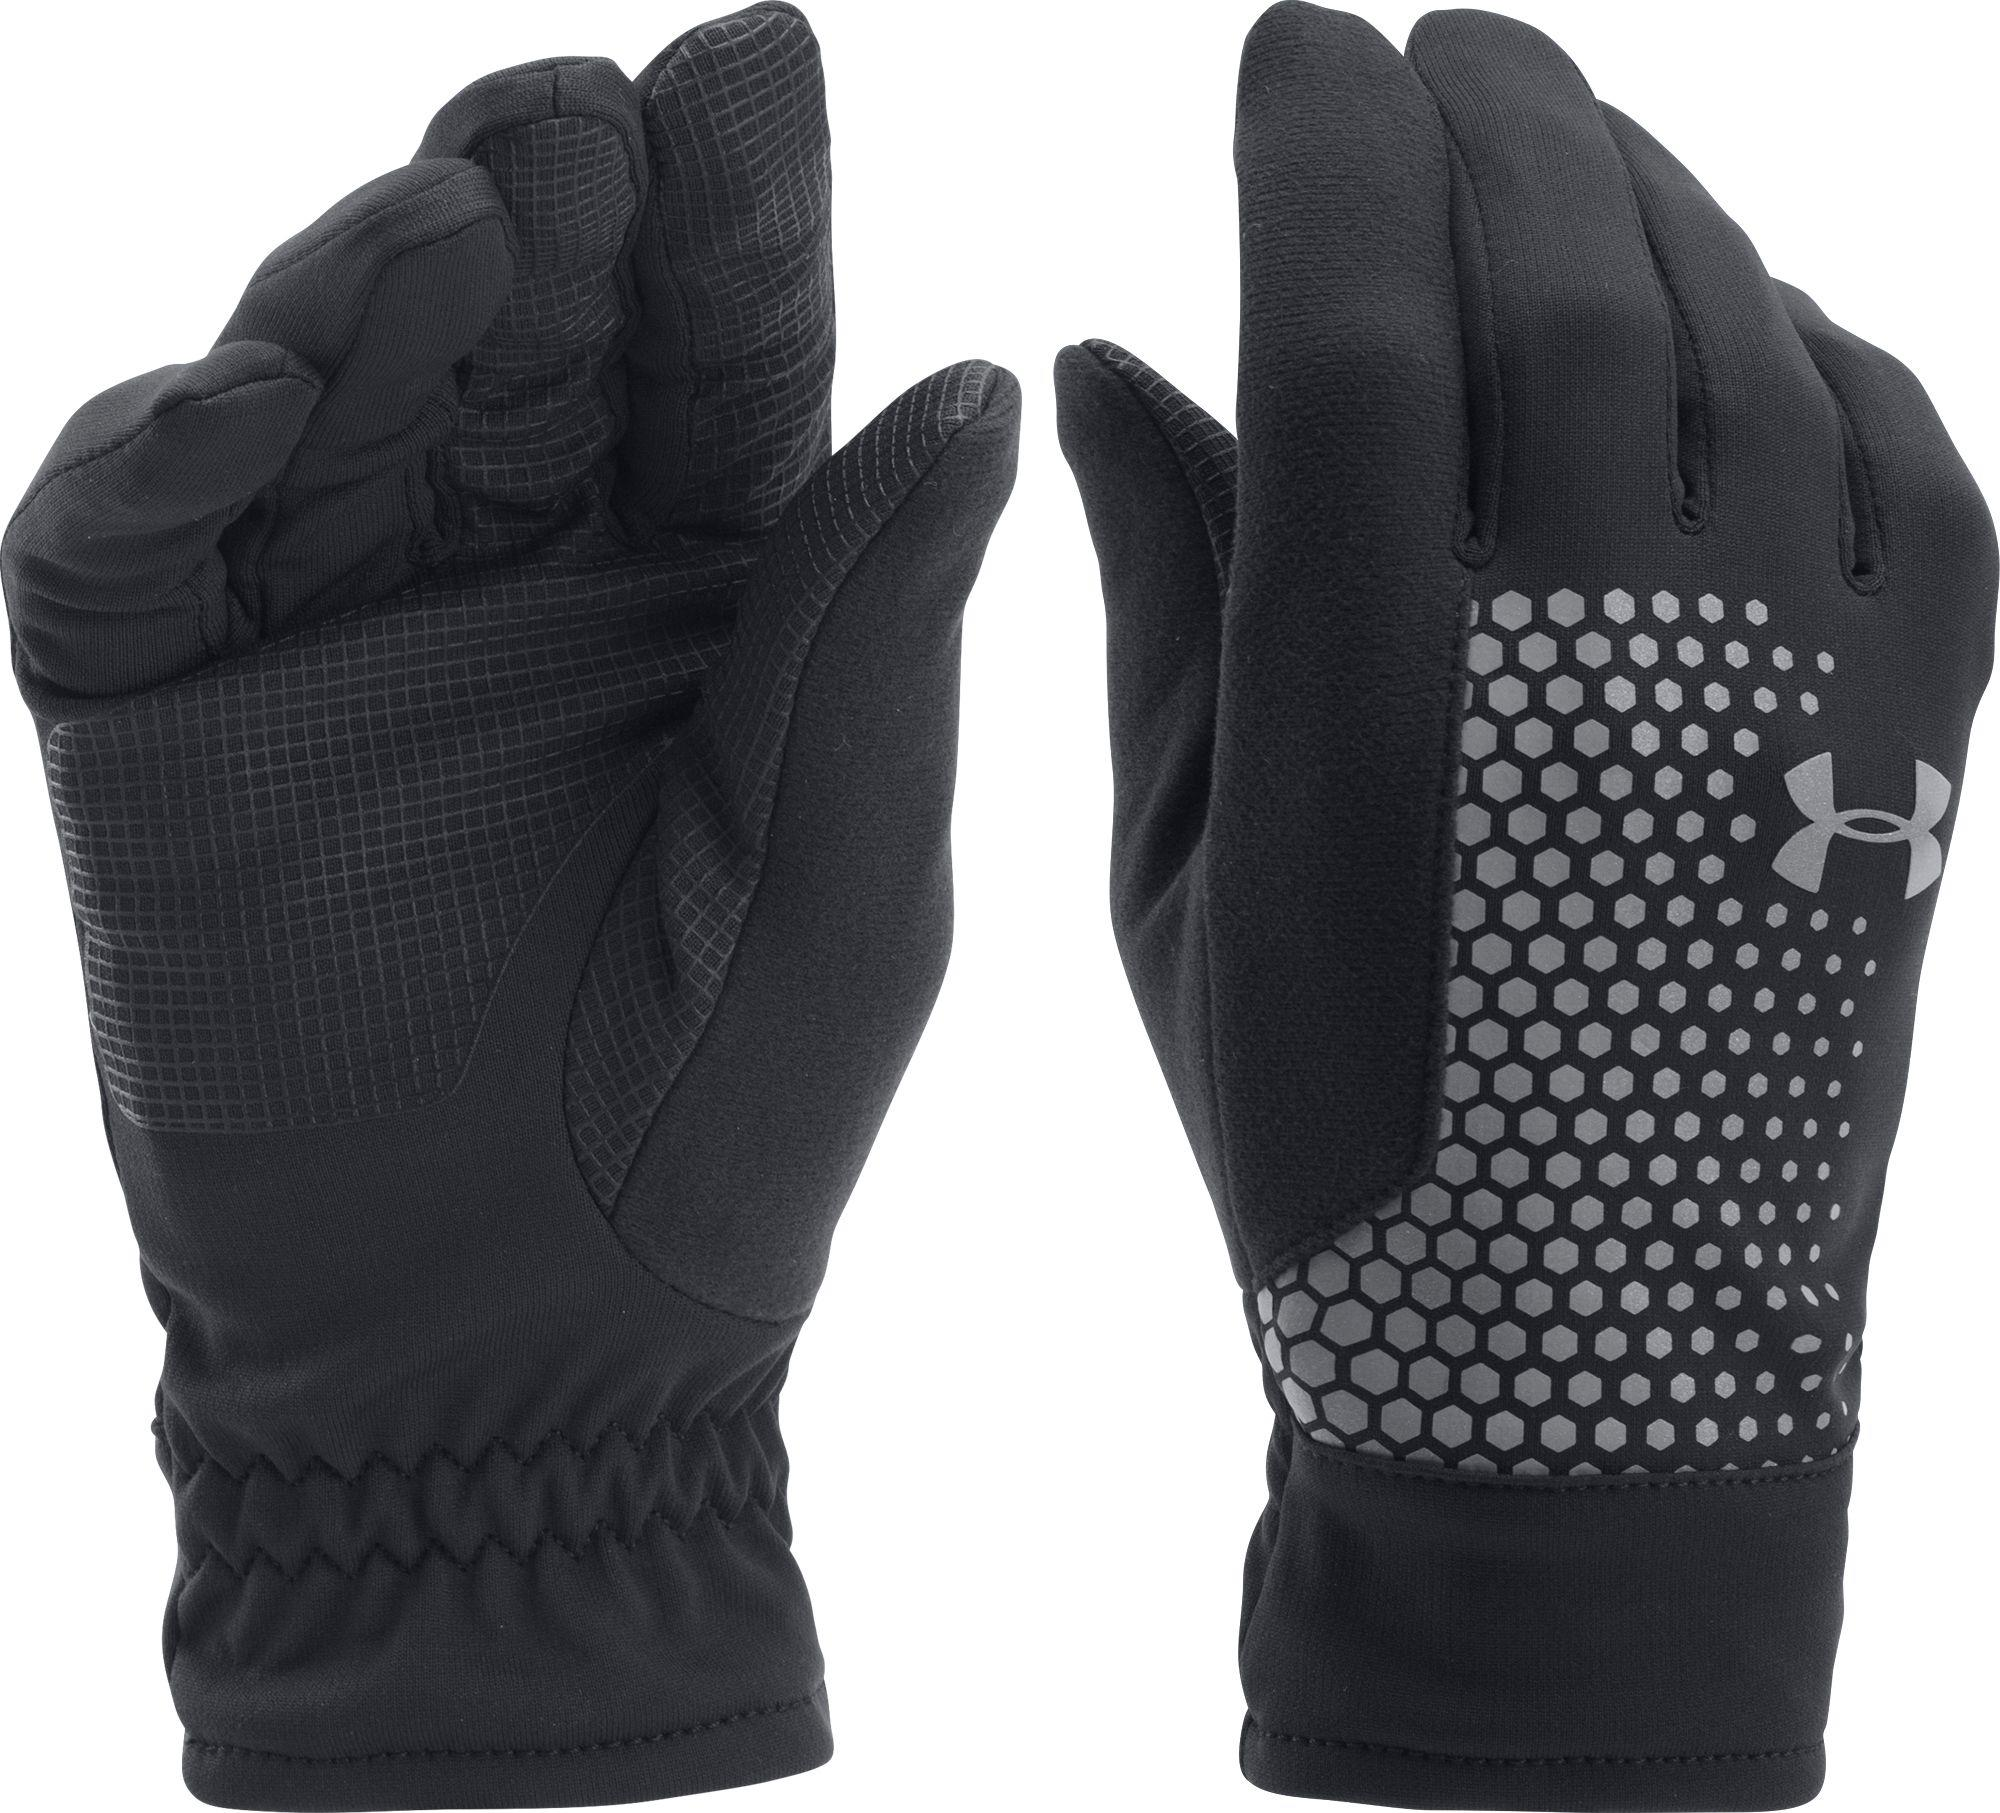 implícito Señora sexo  Under Armour Fleece Threadborne Running Gloves in Black/Black/Silver  (Black) for Men - Lyst